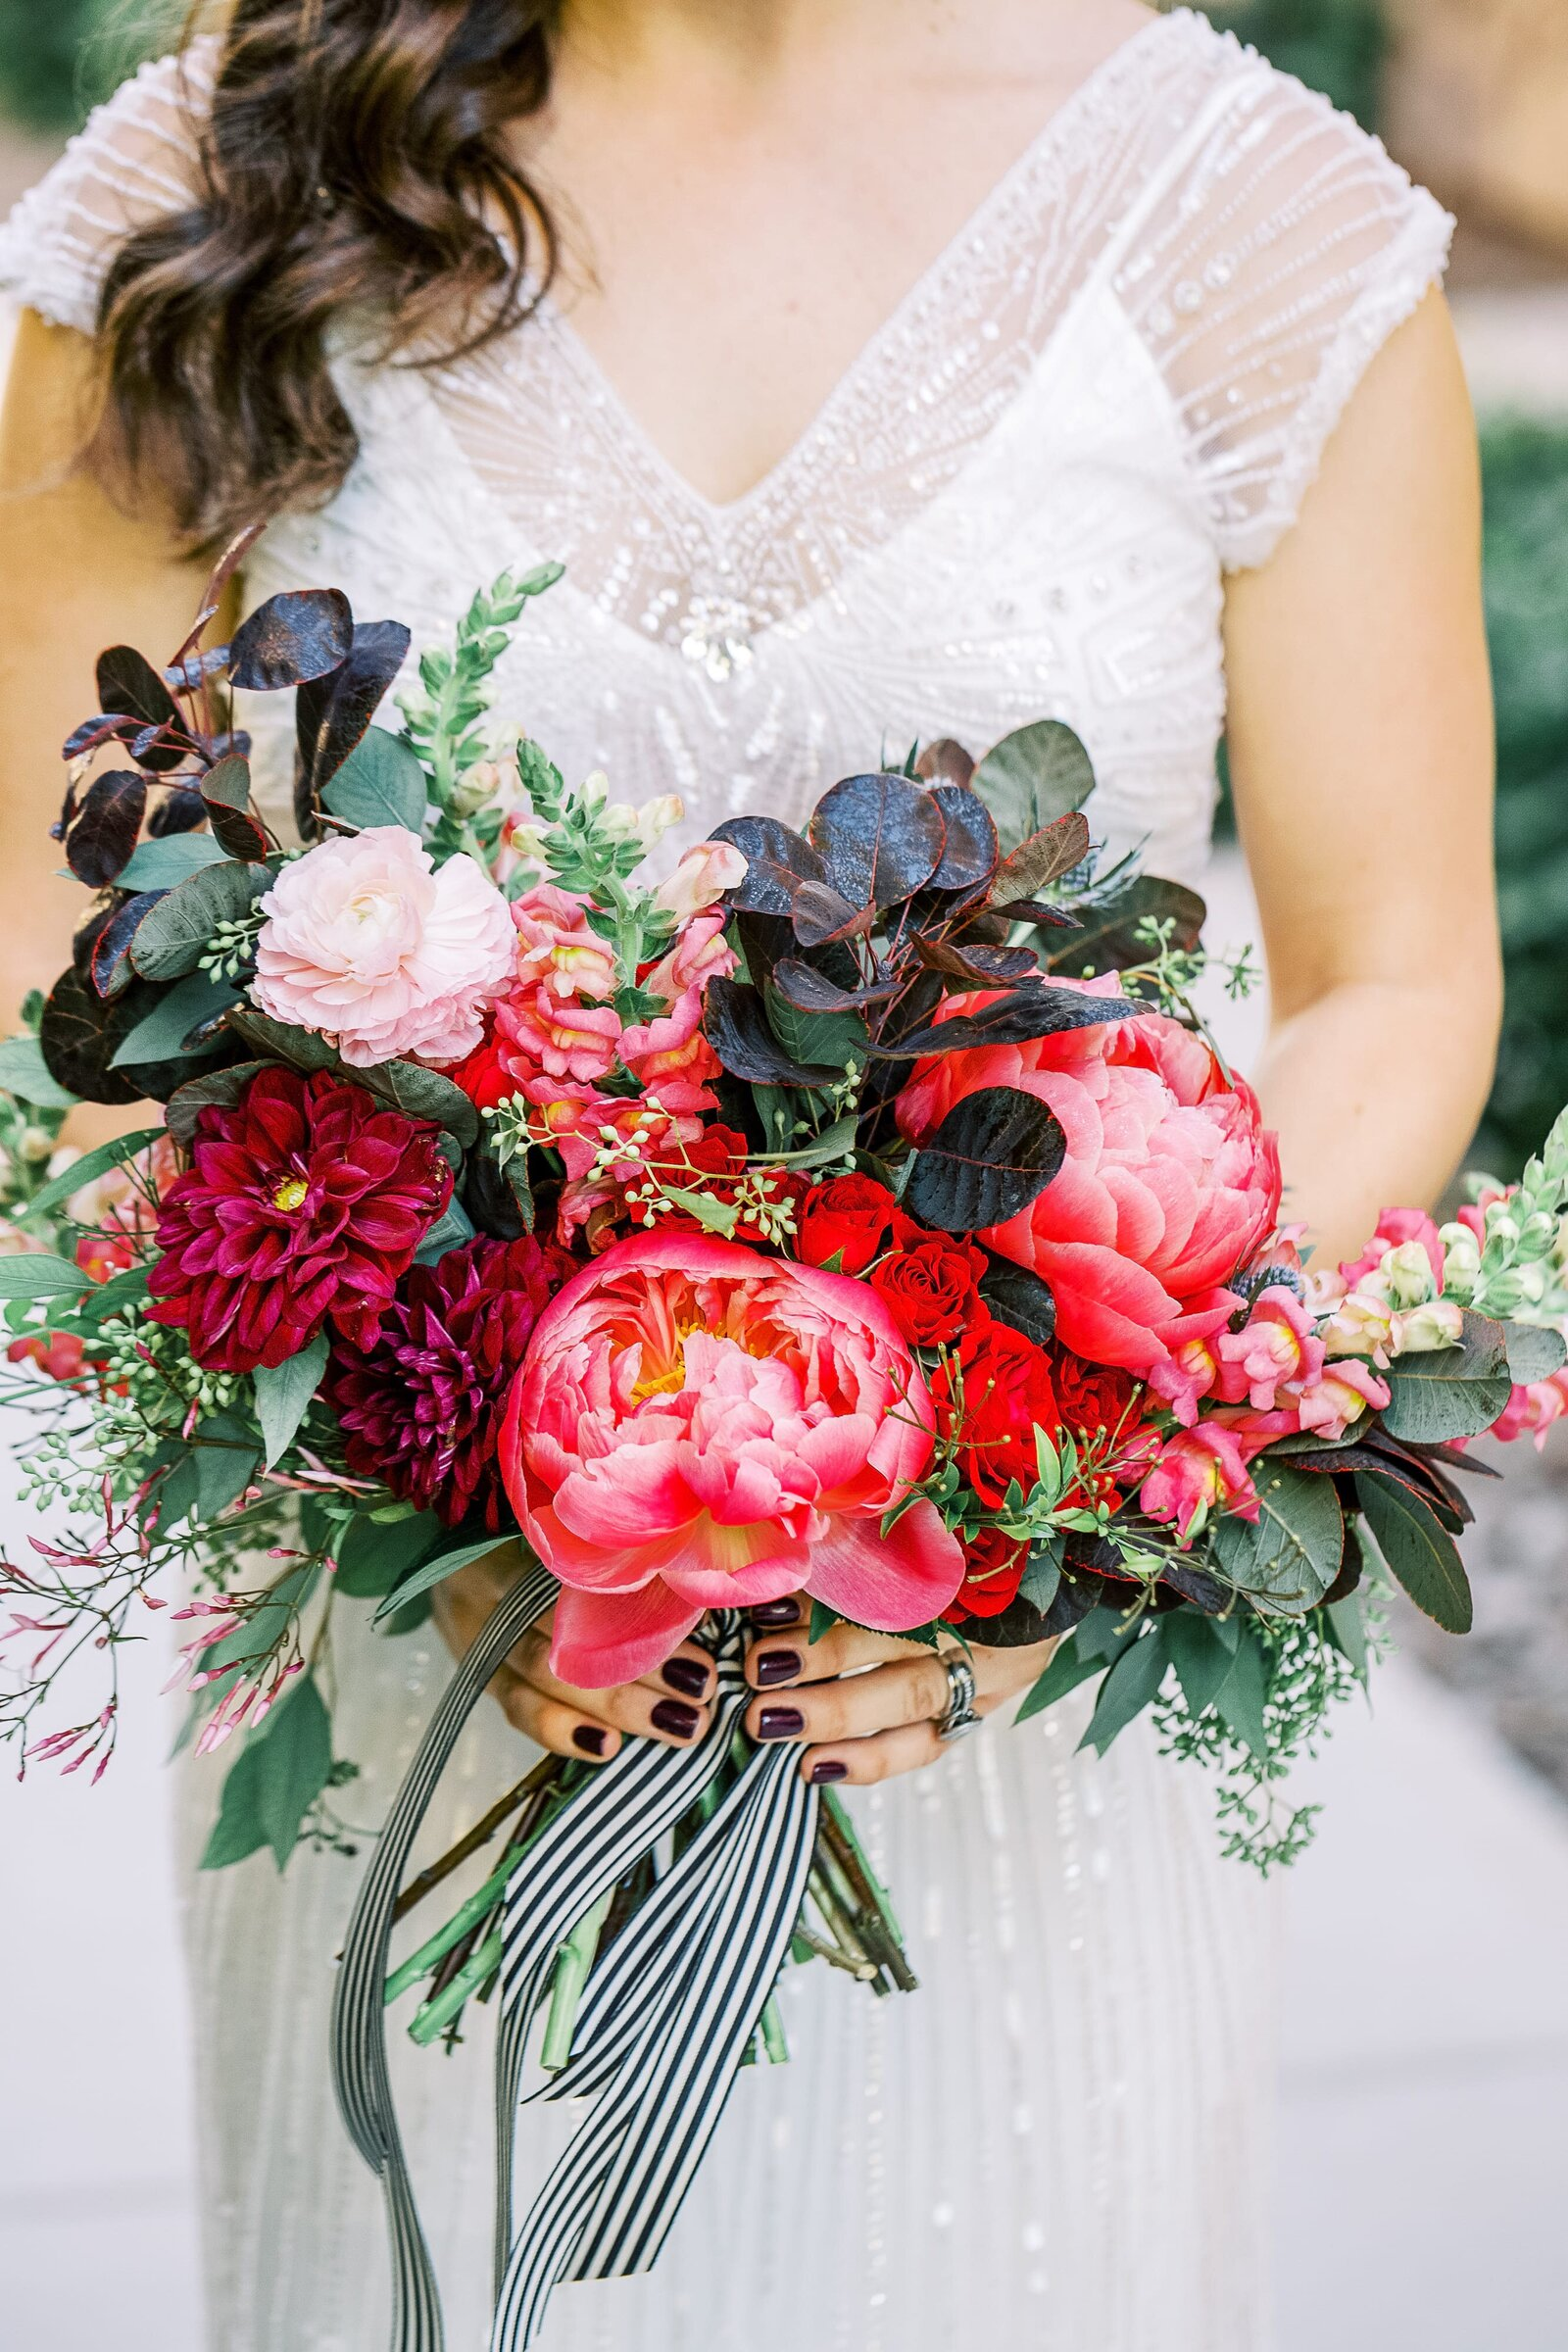 bride-bouquet-with-red-flowers